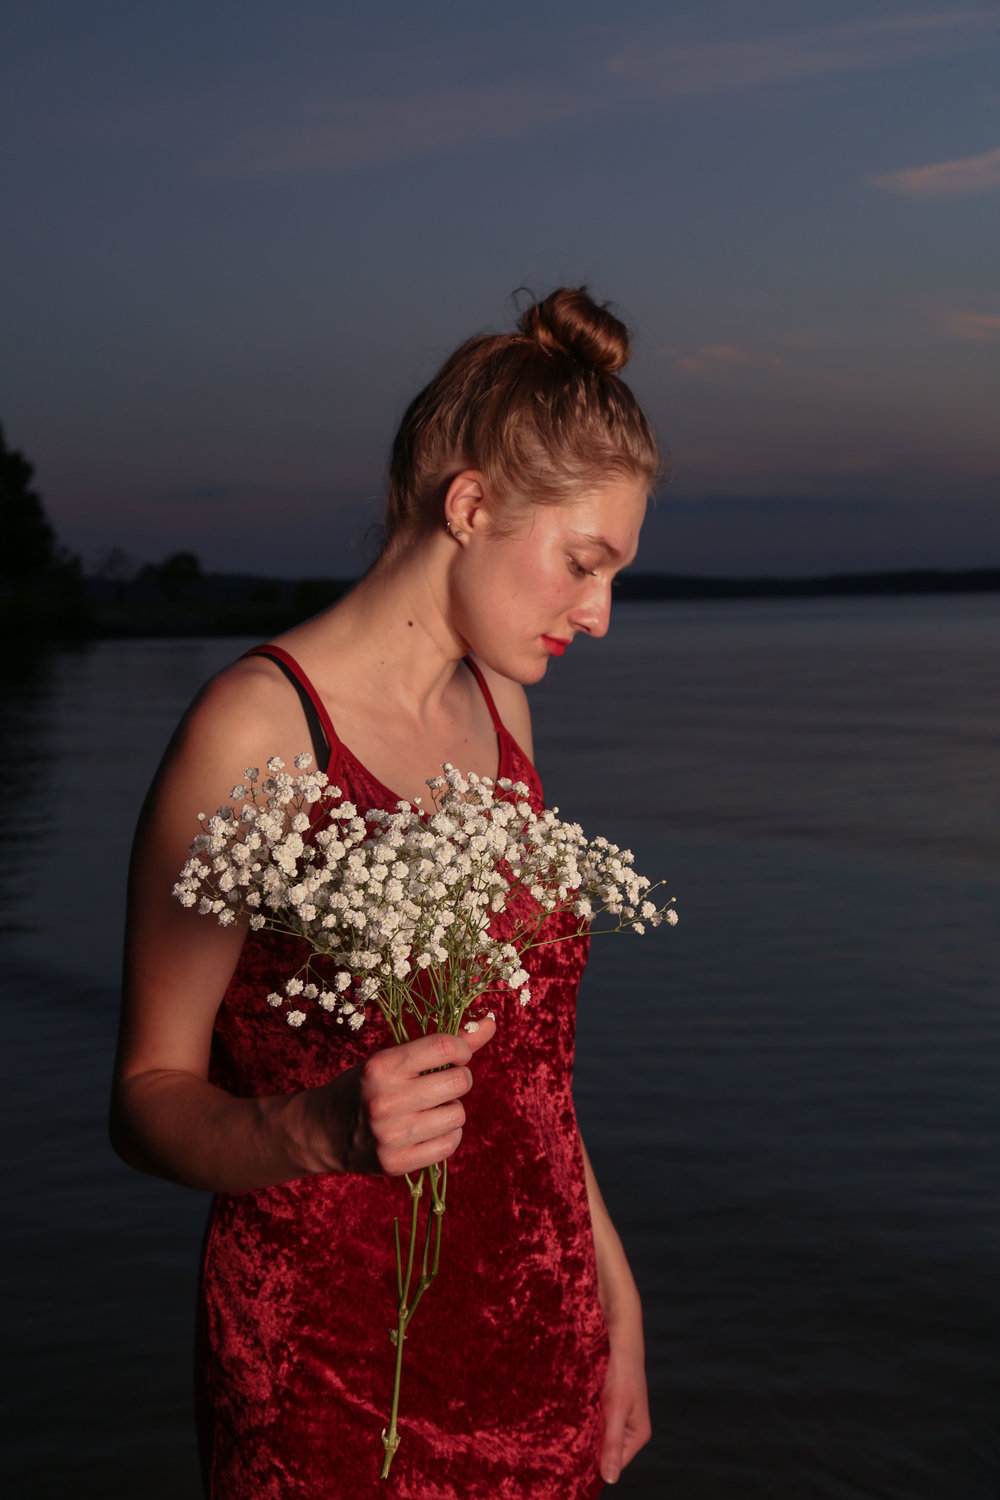 This portrait series was shot in the evening of Sep.16, 2016 at the Jordan Lake, NC, featuring a senior photojournalism student Clair Collins. The red velvet dress is picked on purpose to match the golden hour.